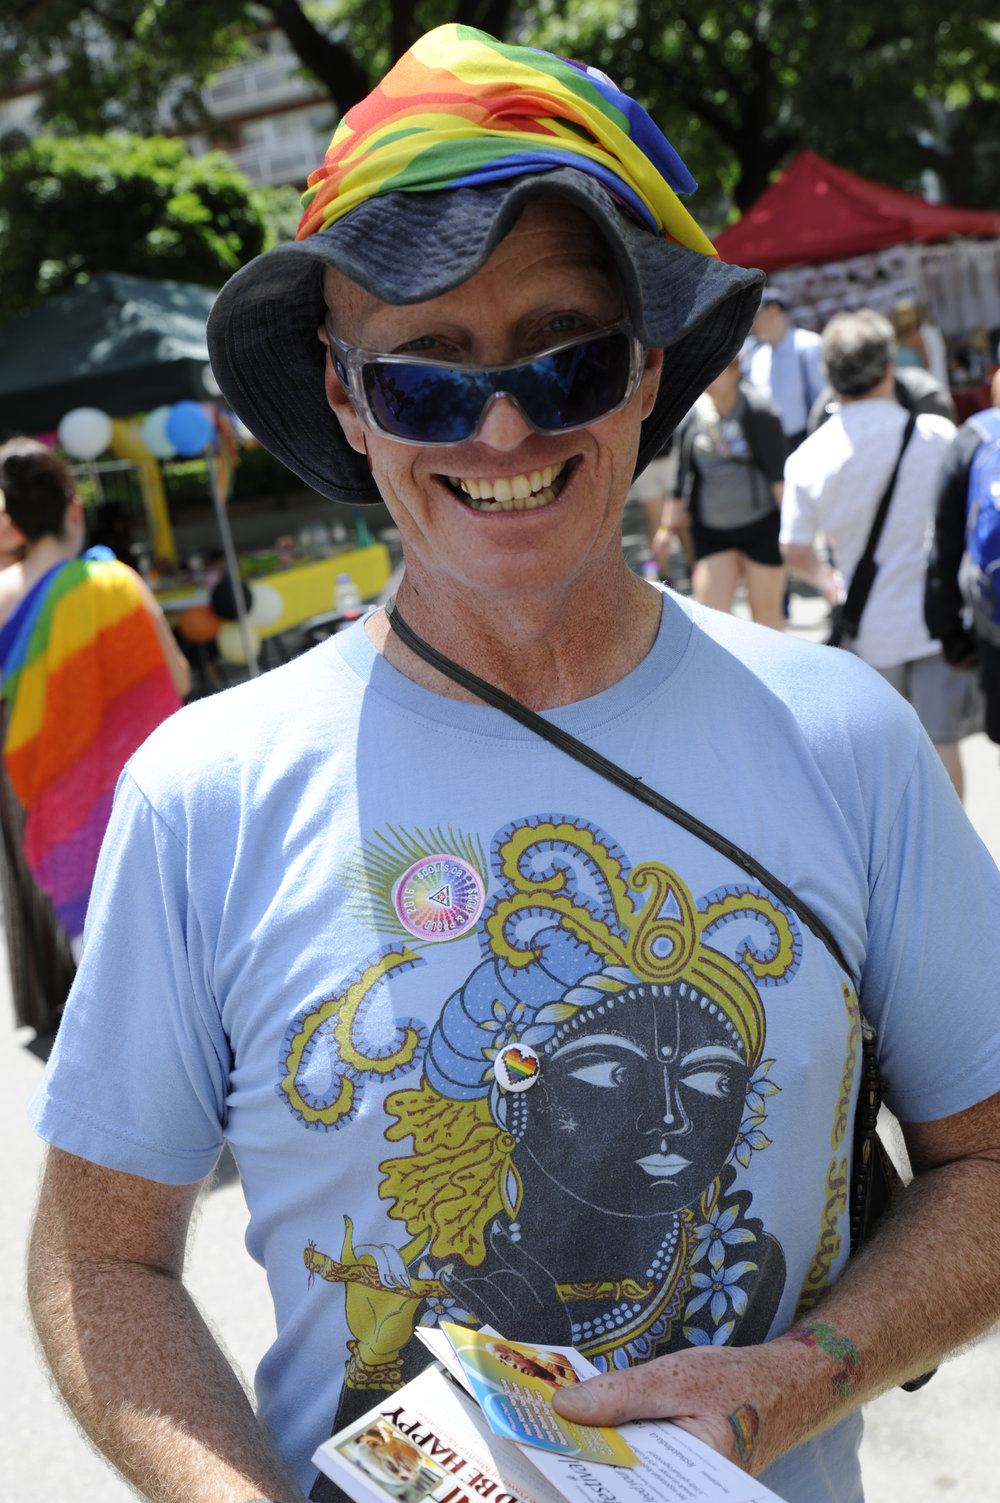 Pride_2016_street fair_Paul_Kinnis_45.jpg